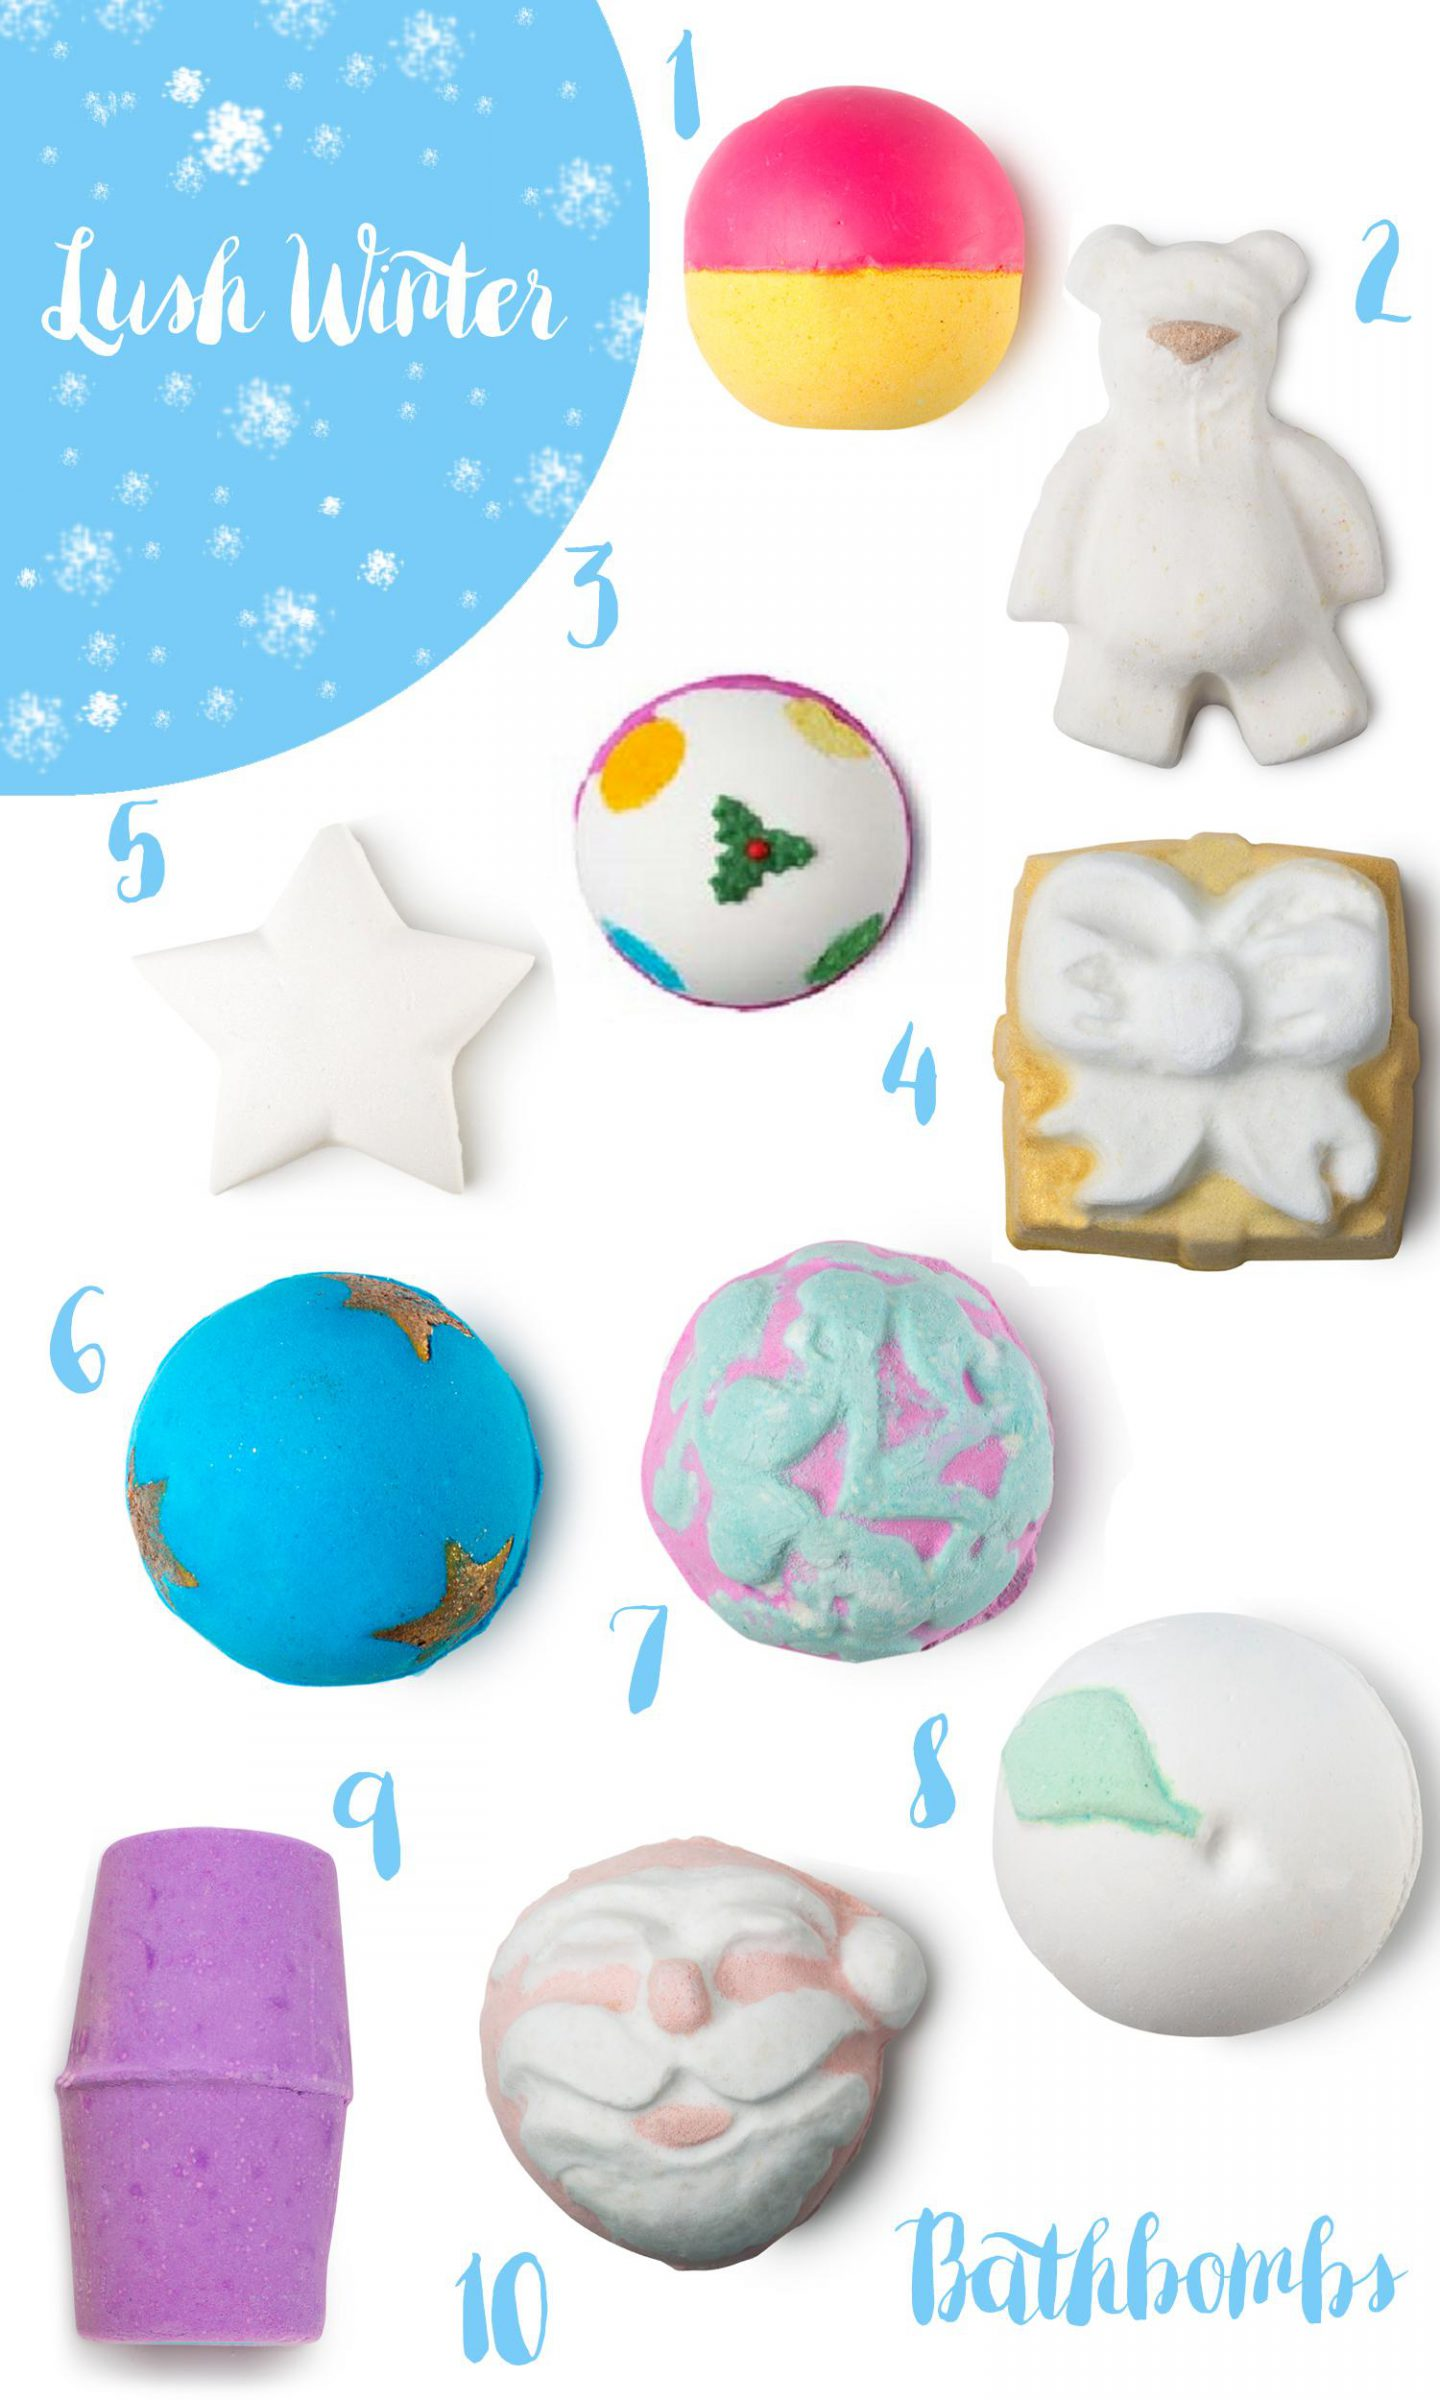 lush winter 2016 bathbombs